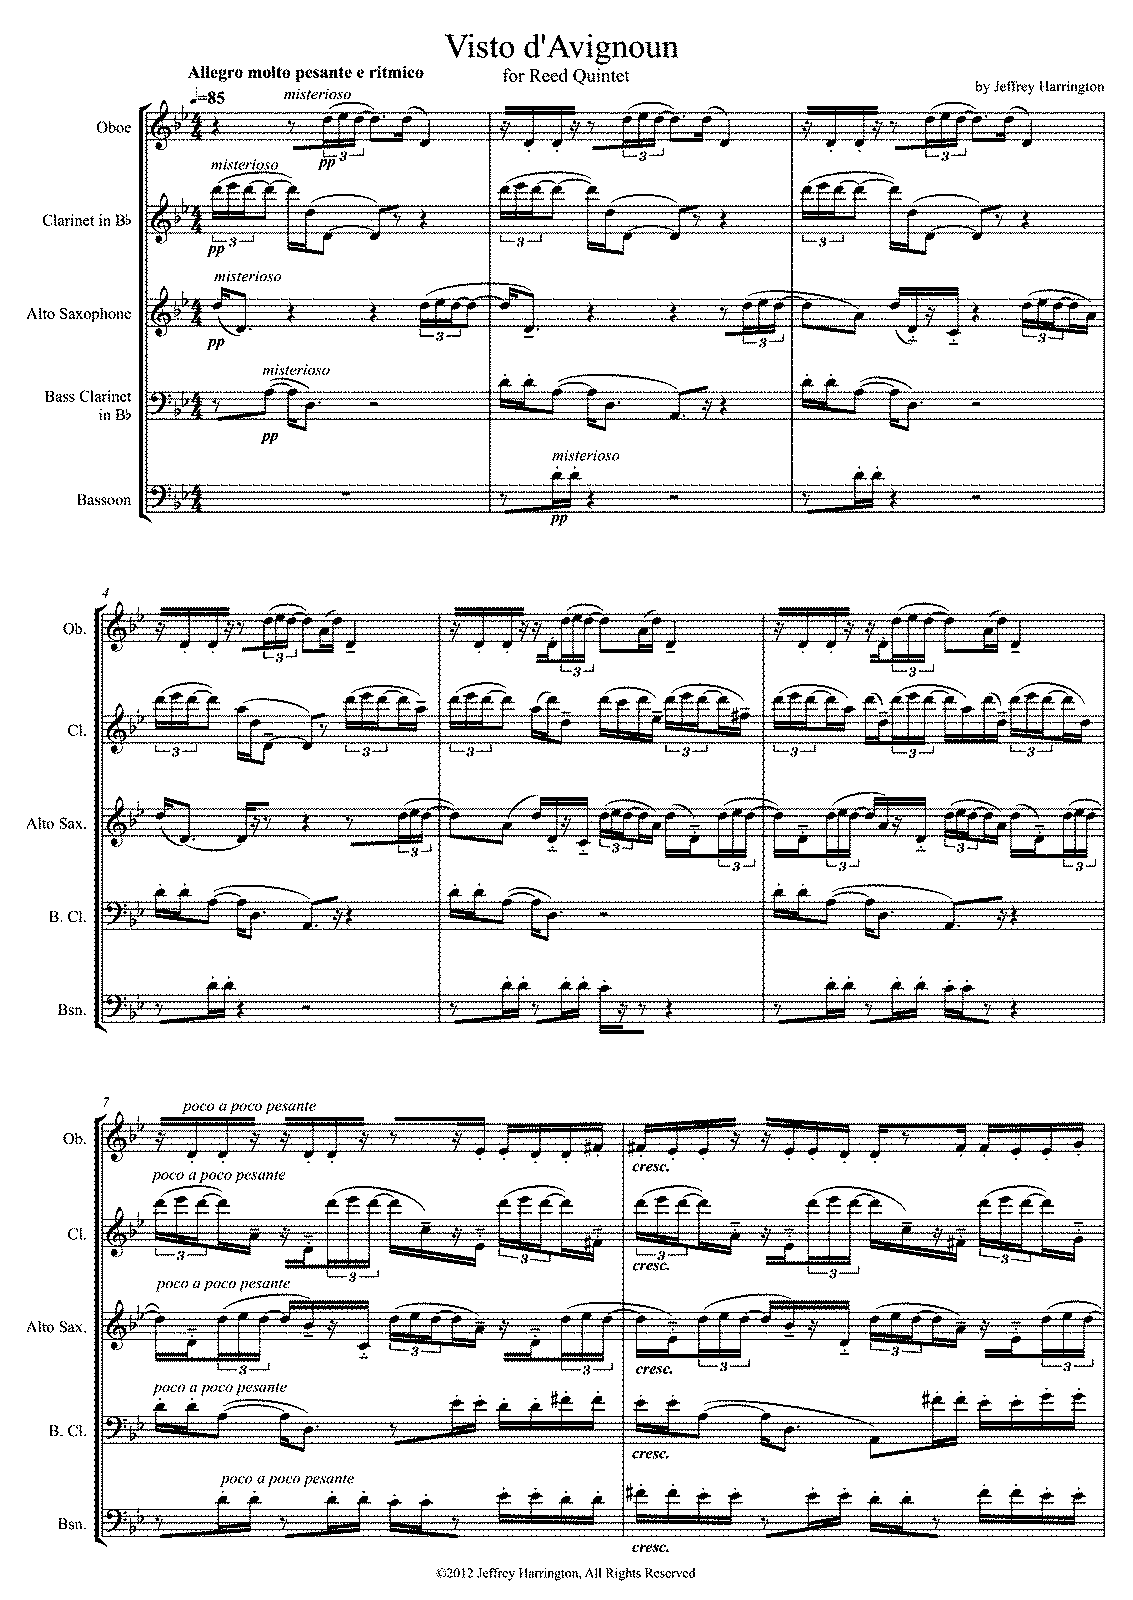 PMLP430007-Visto d'Avignoun - Jeffrey Harrington - Full Score.pdf